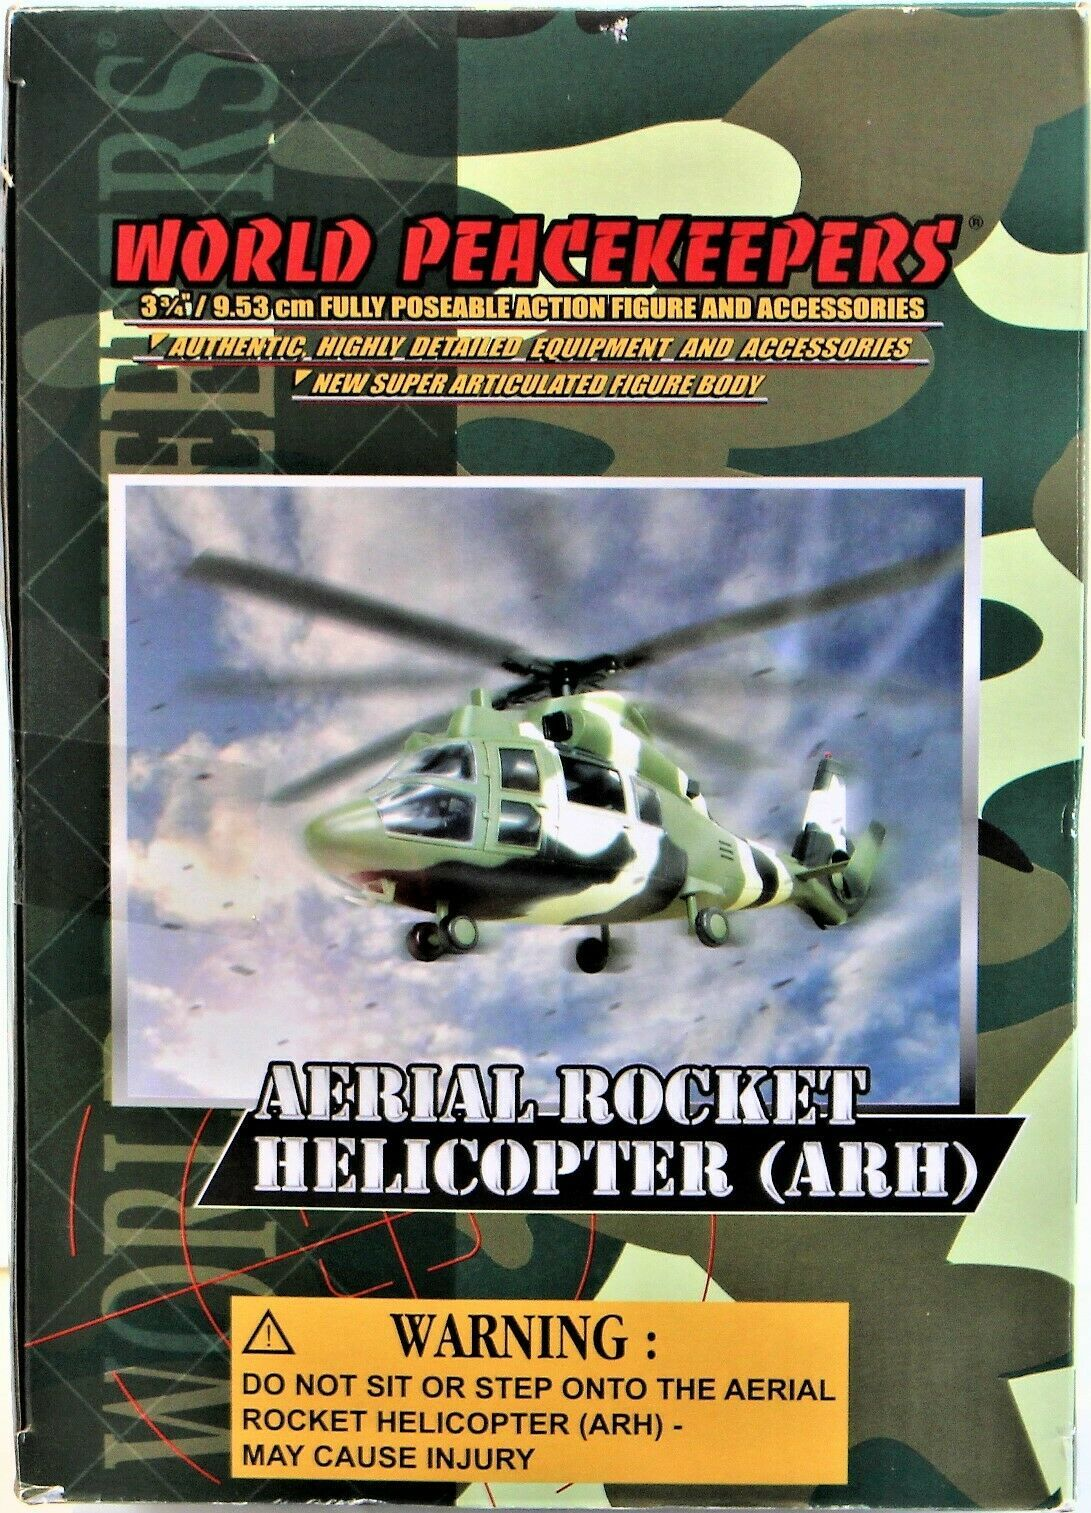 World Peacekeepers Power Team Elite Aerial Rocket Helicopter (ARH) 1:18 Scale image 6